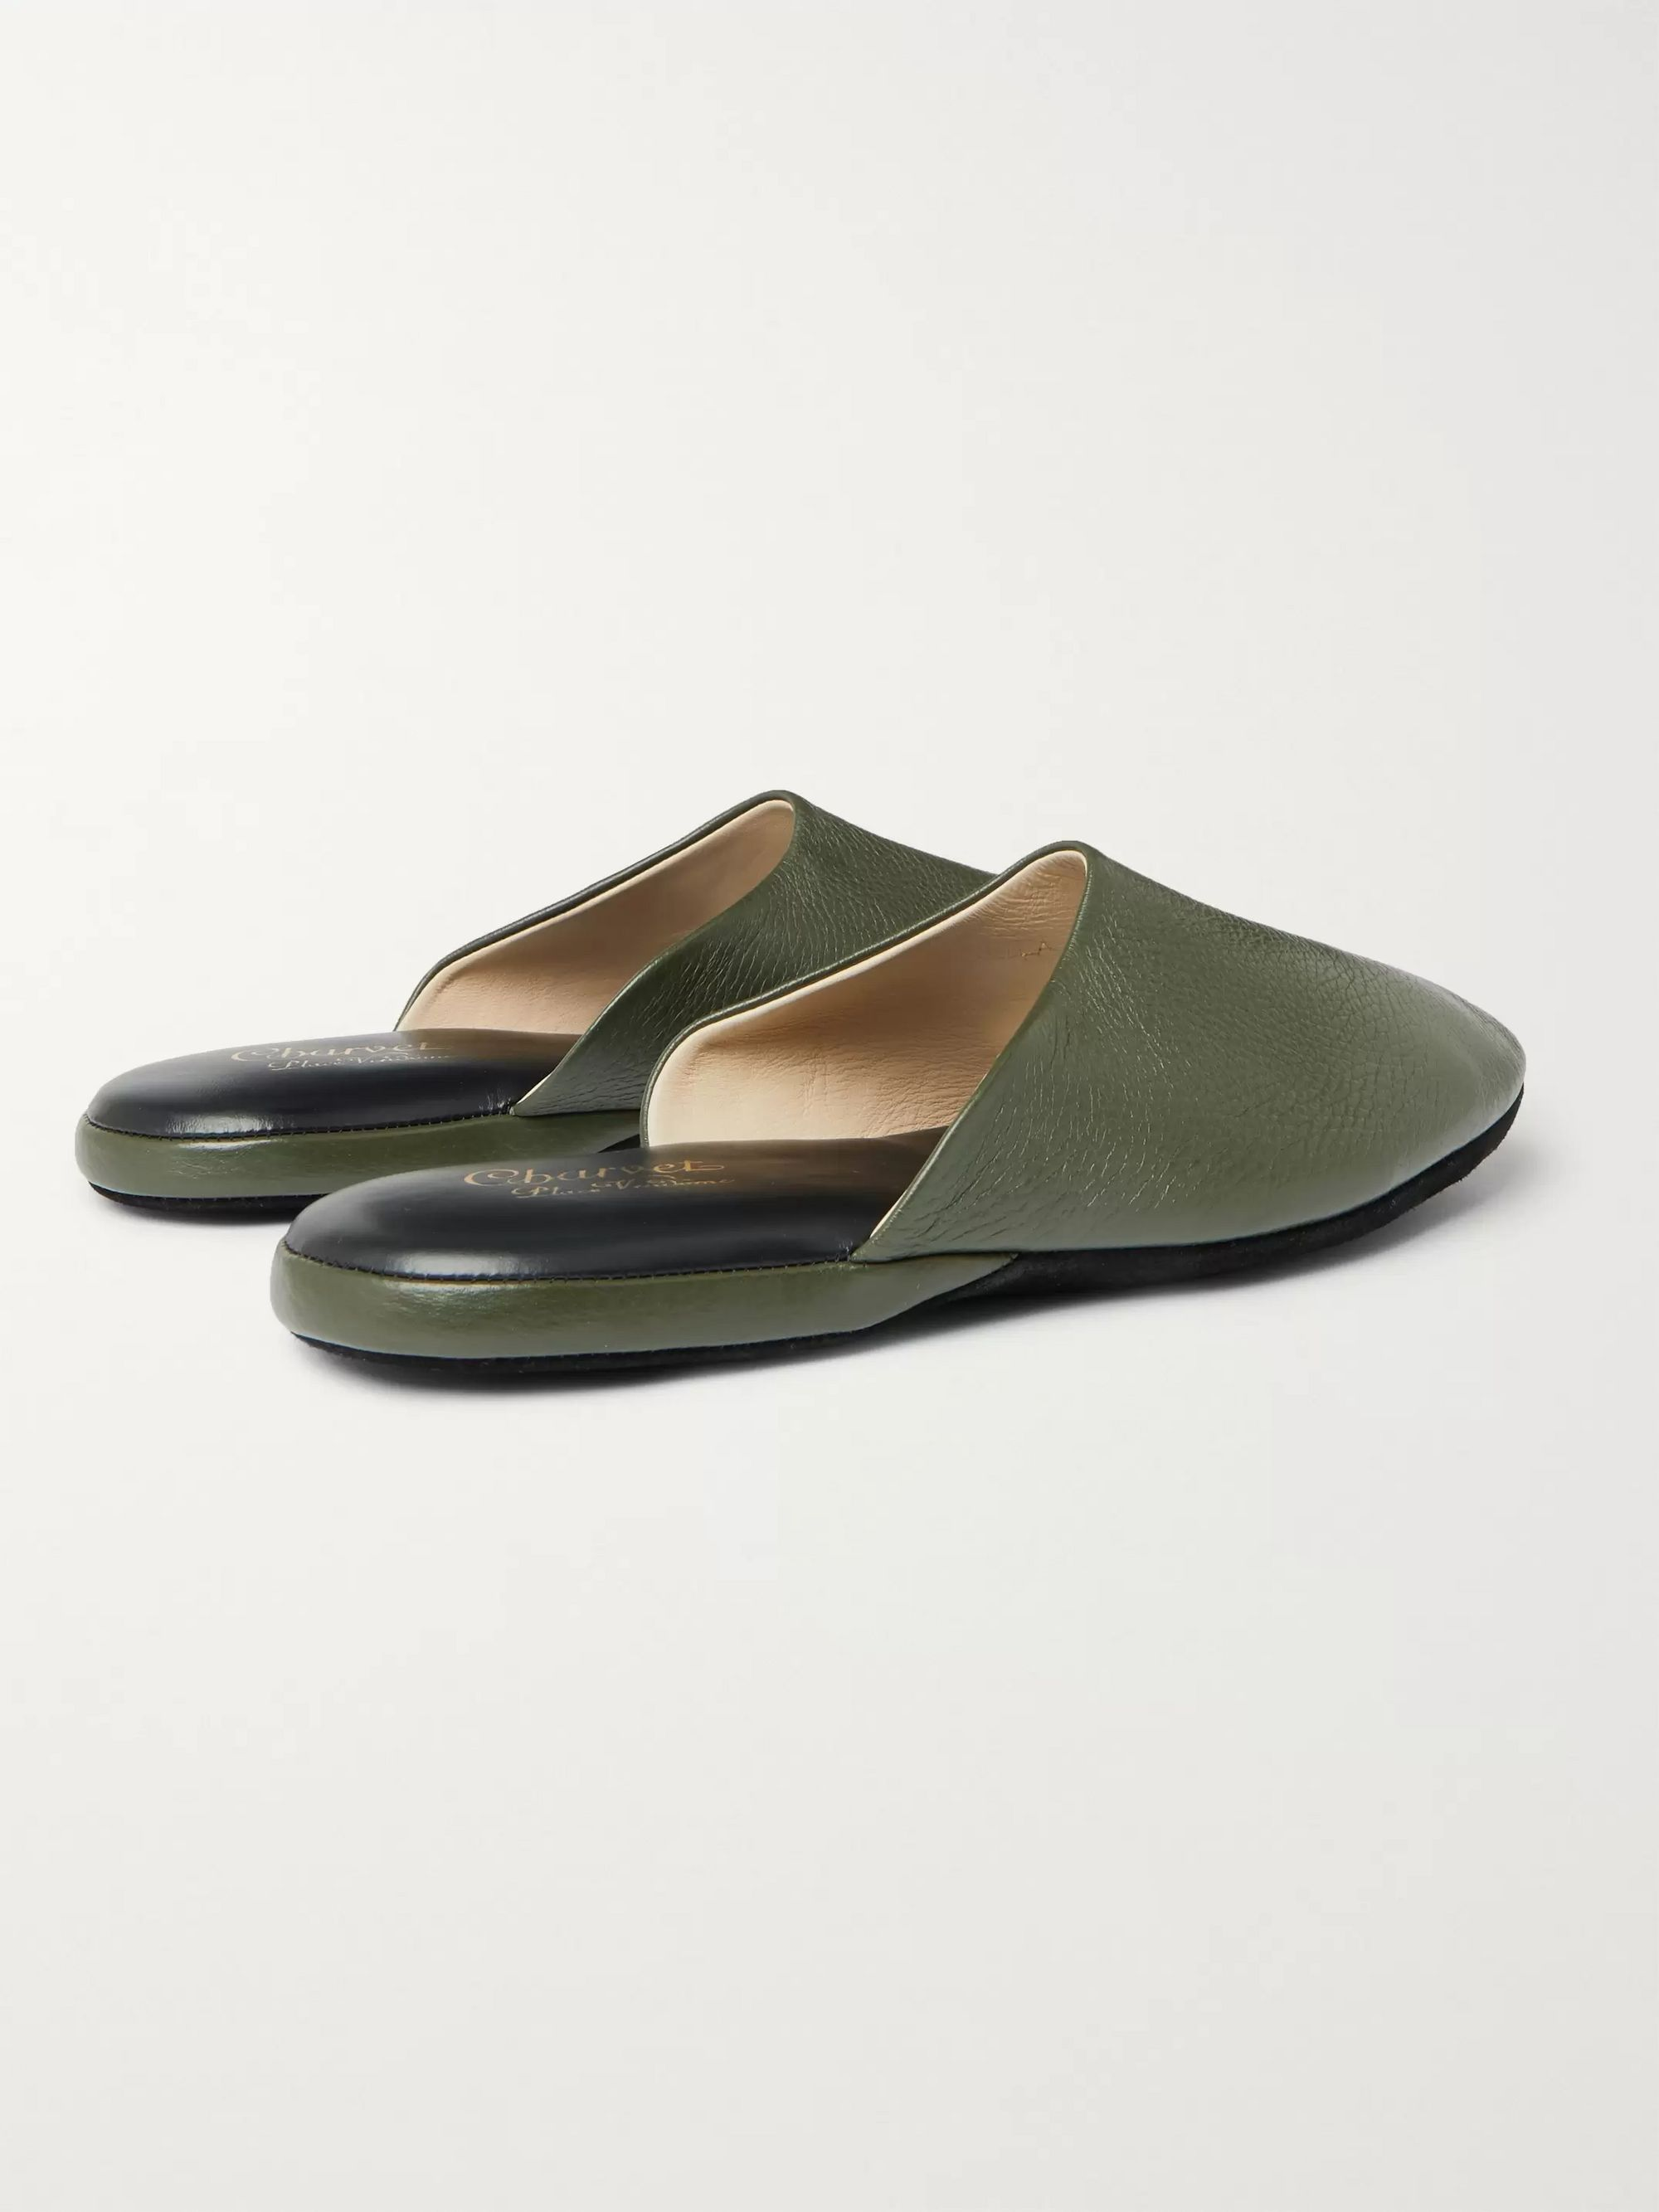 Charvet Leather Slippers